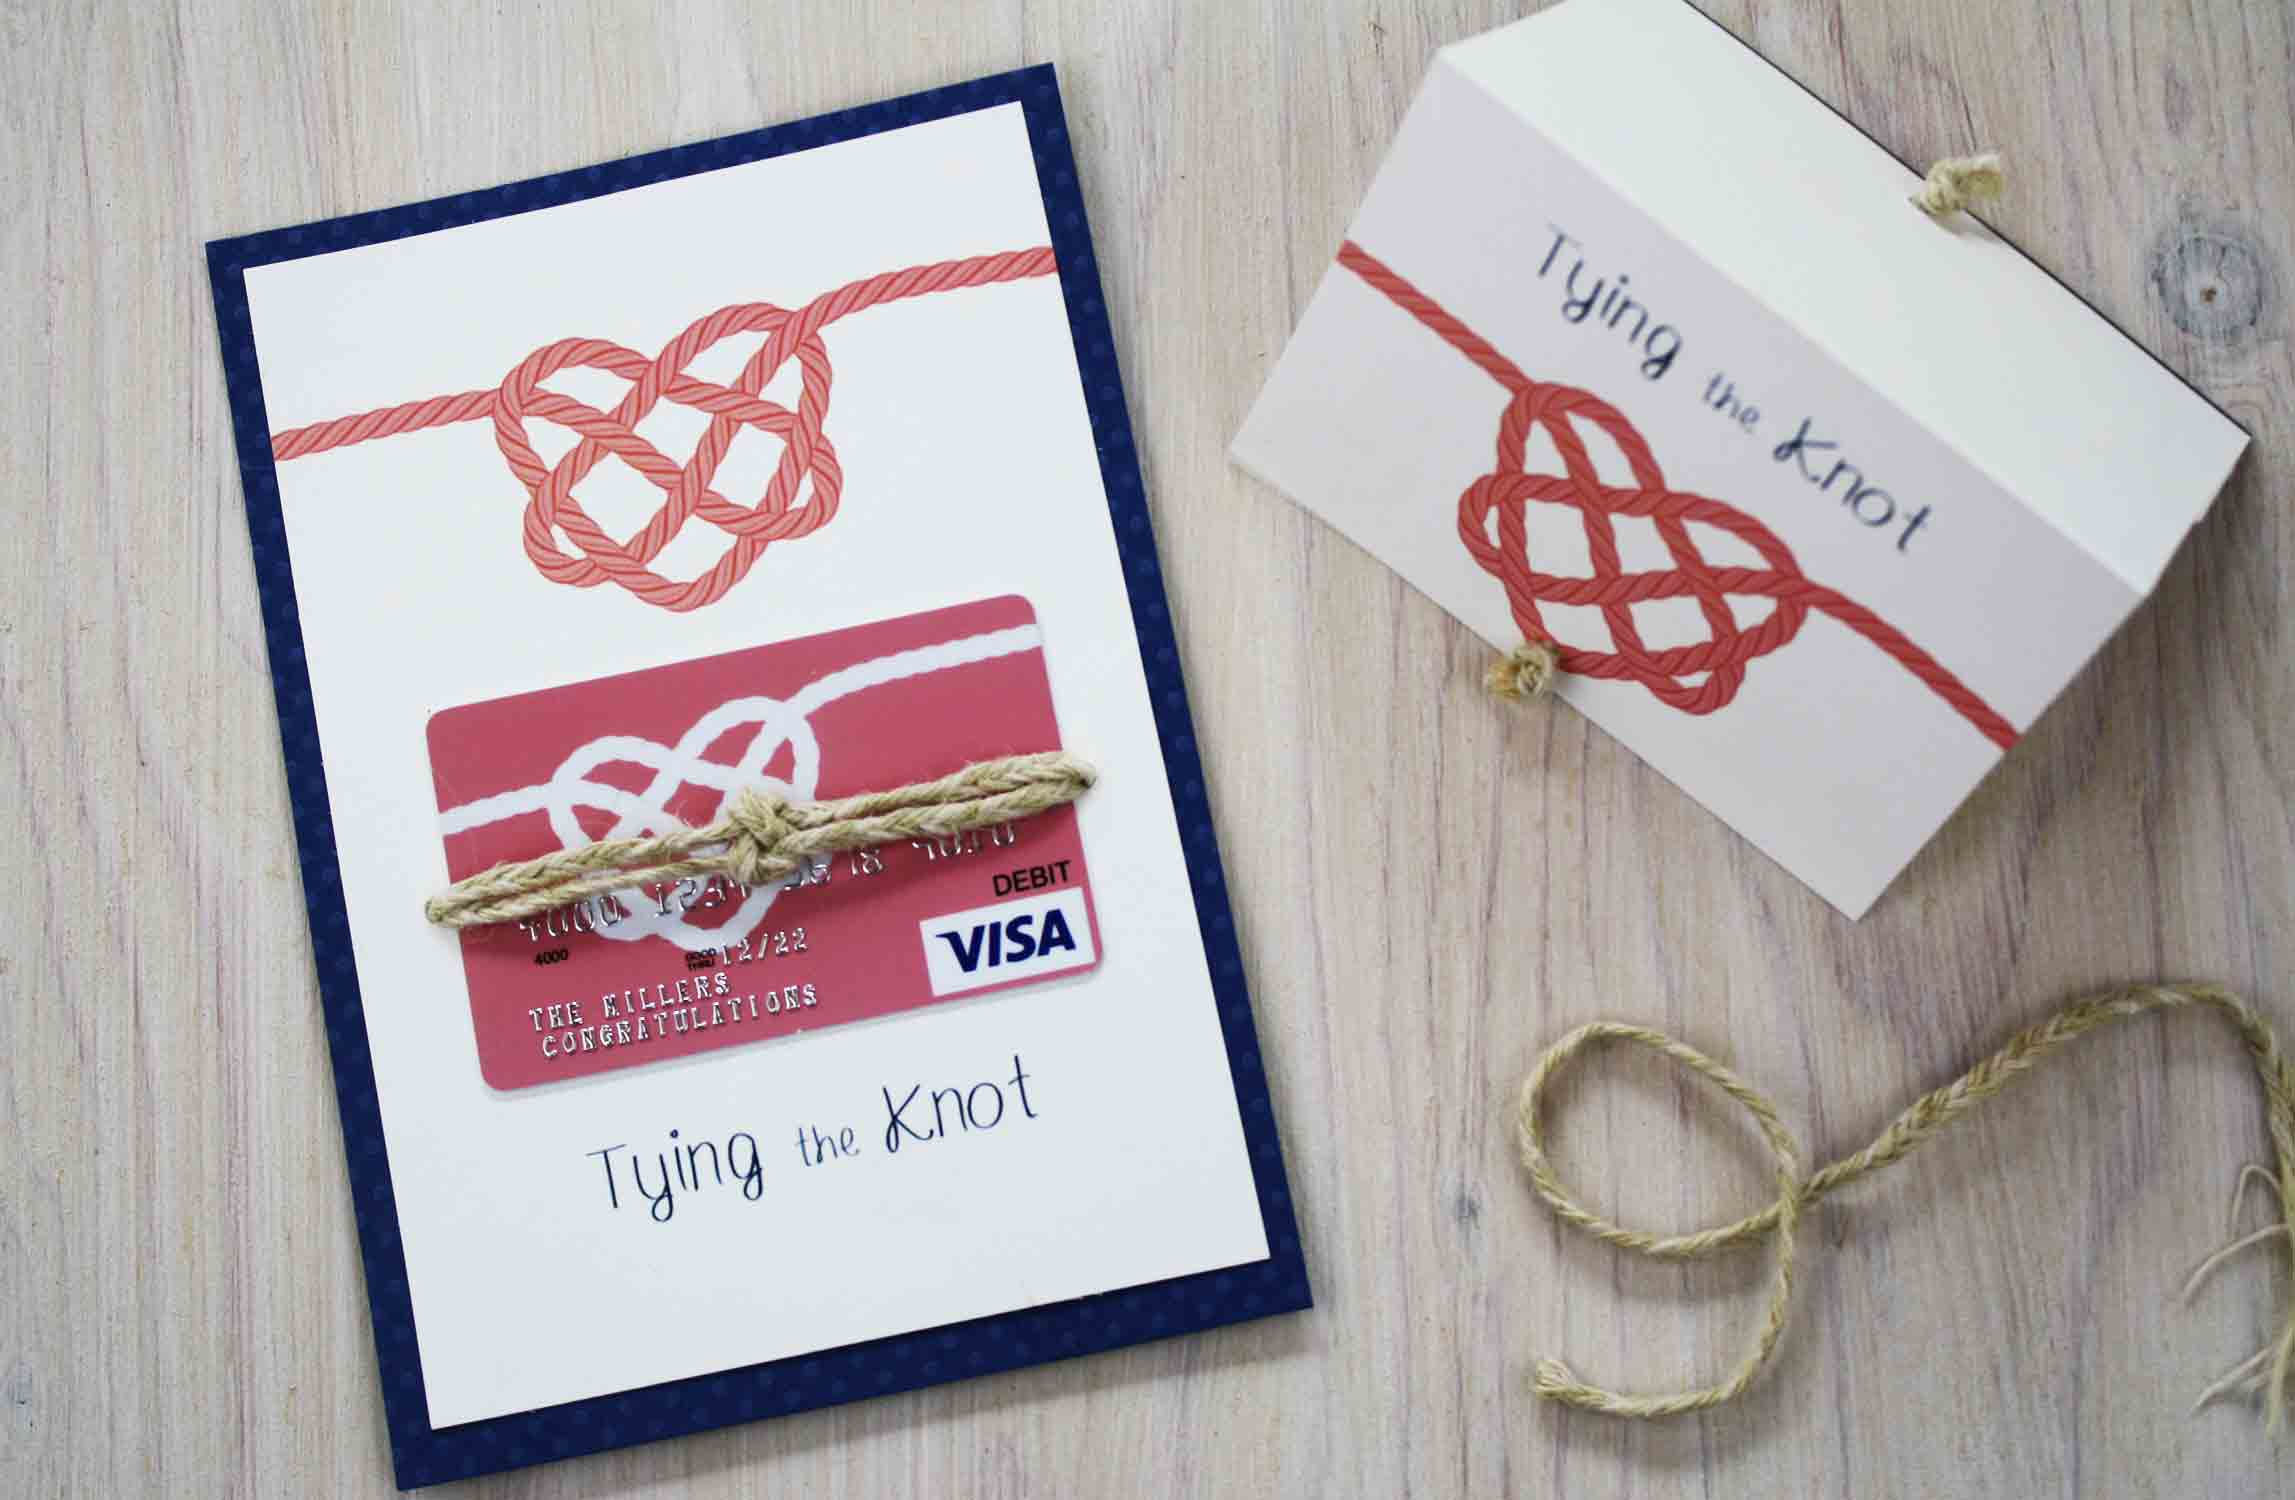 photograph about Printable Knot Tying Cards identify No cost Printable Congratulations upon Tying the Knot